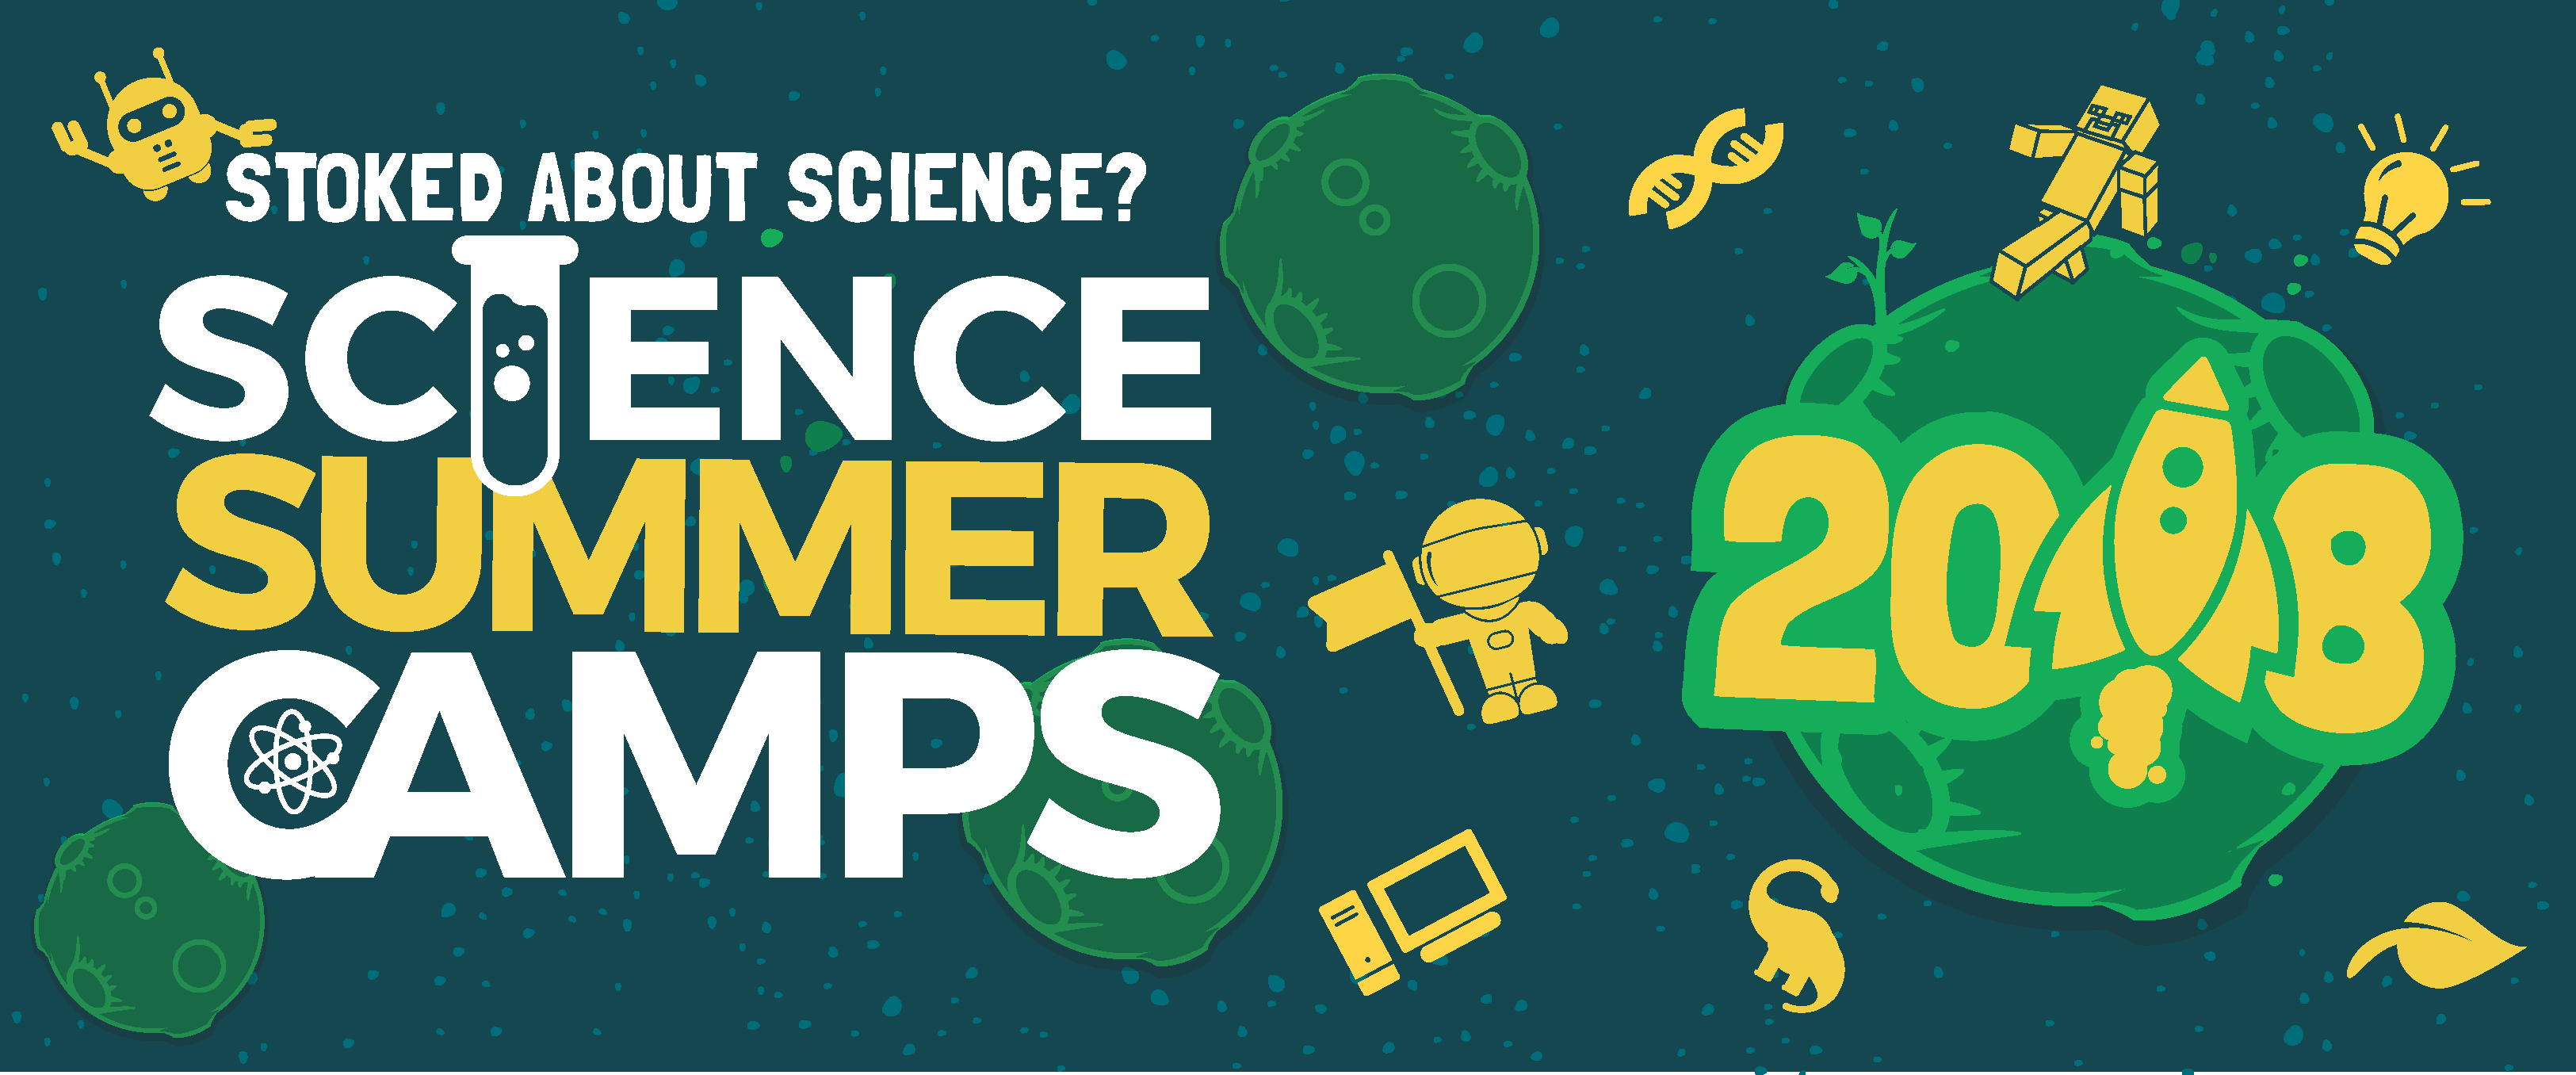 Science Summer Camps 2018